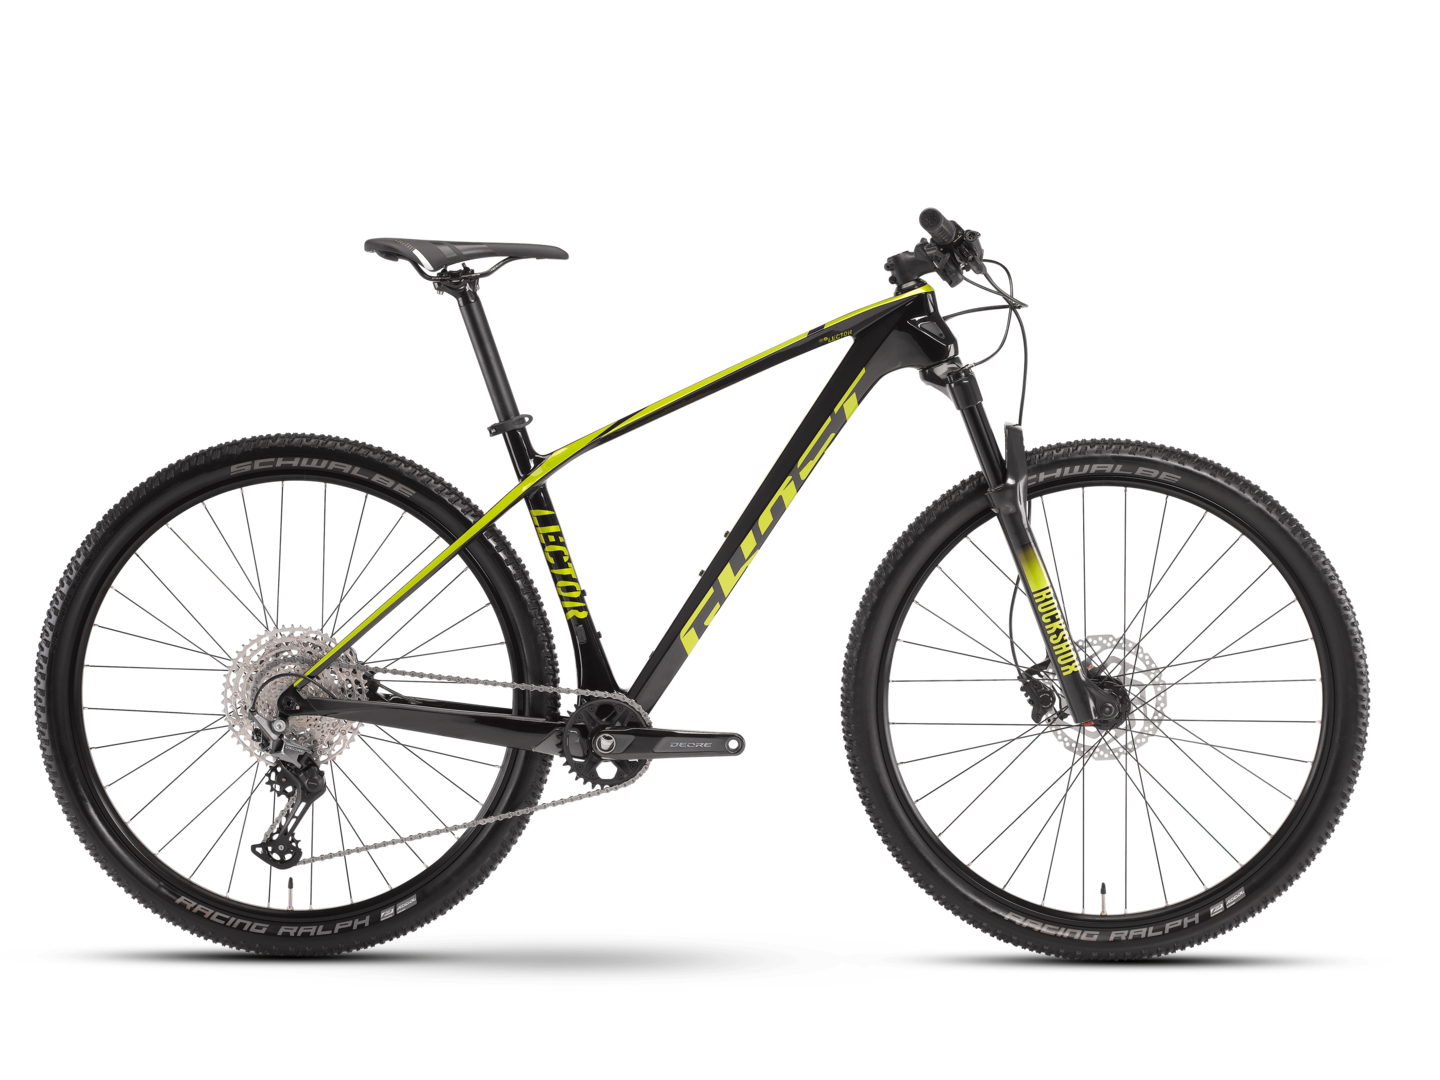 [Translate to English:] GHOST-Bikes LECTOR Base MTB Hardtail